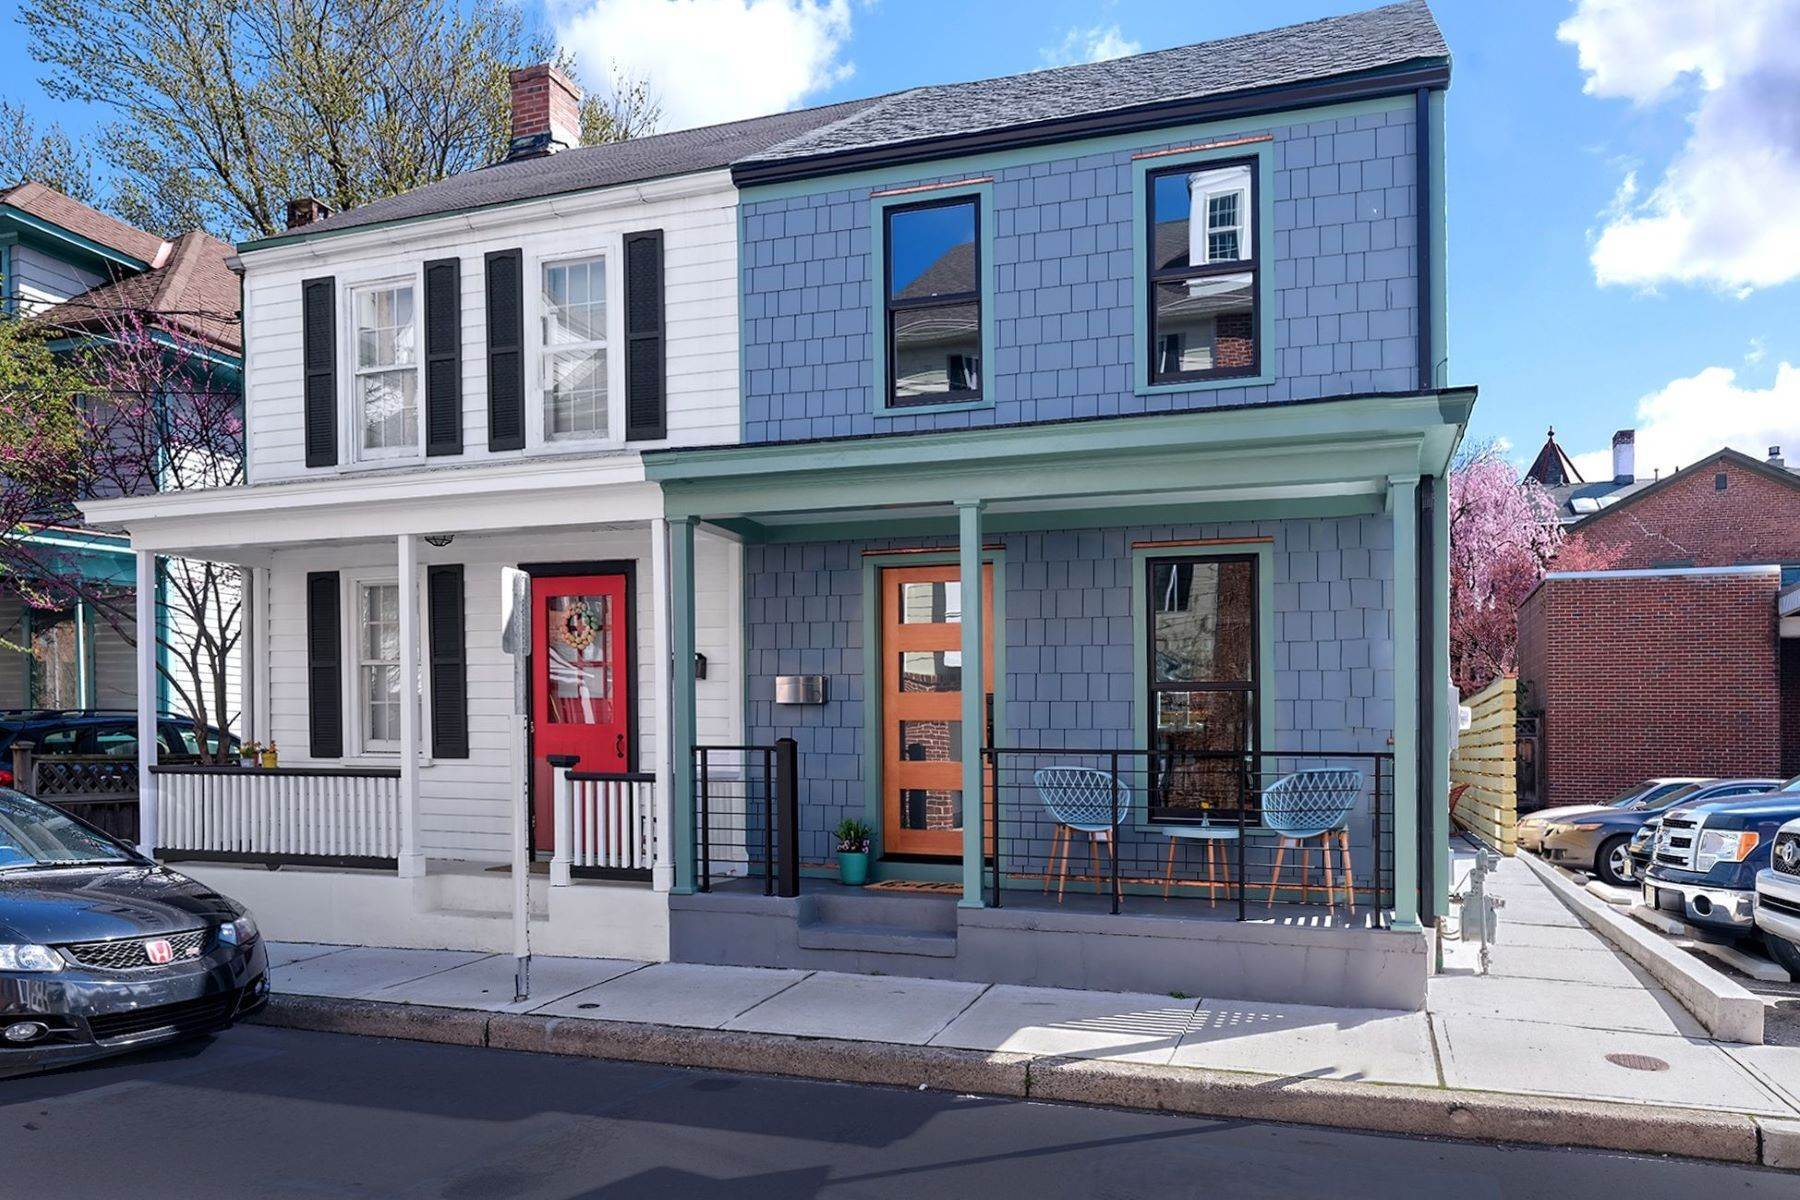 Single Family Homes for Sale at Looks and Feels Like New Construction 10 Clinton Street Lambertville, New Jersey 08530 United States